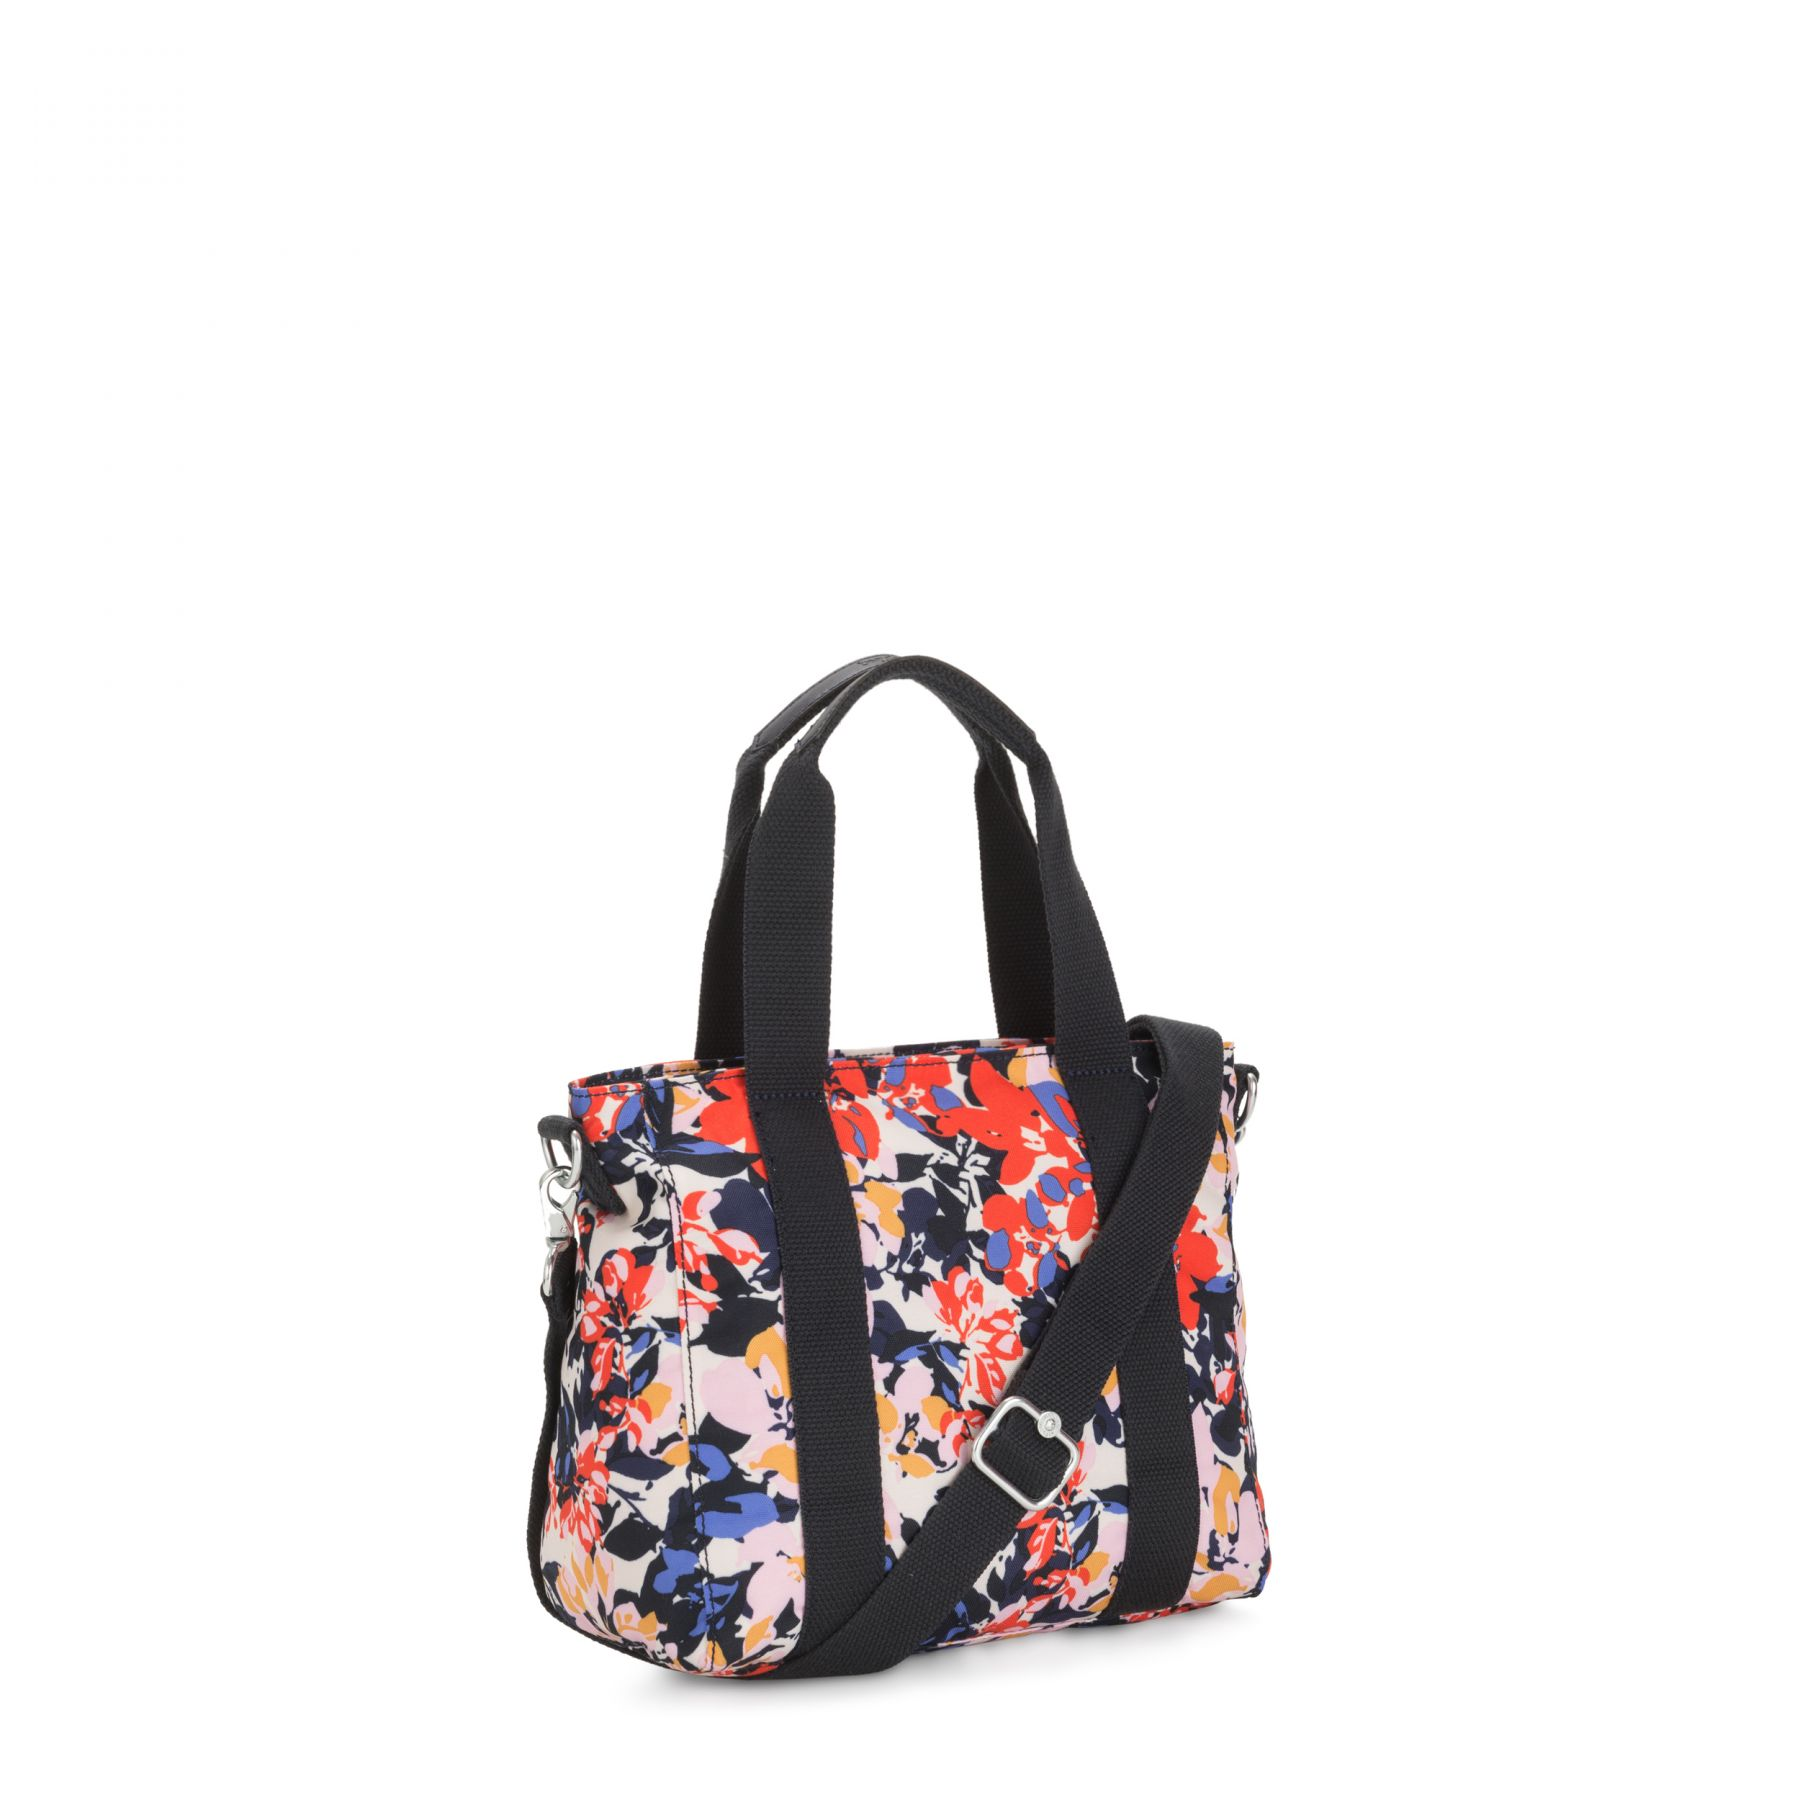 ASSENI MINI Online Exclusives by Kipling - Back view